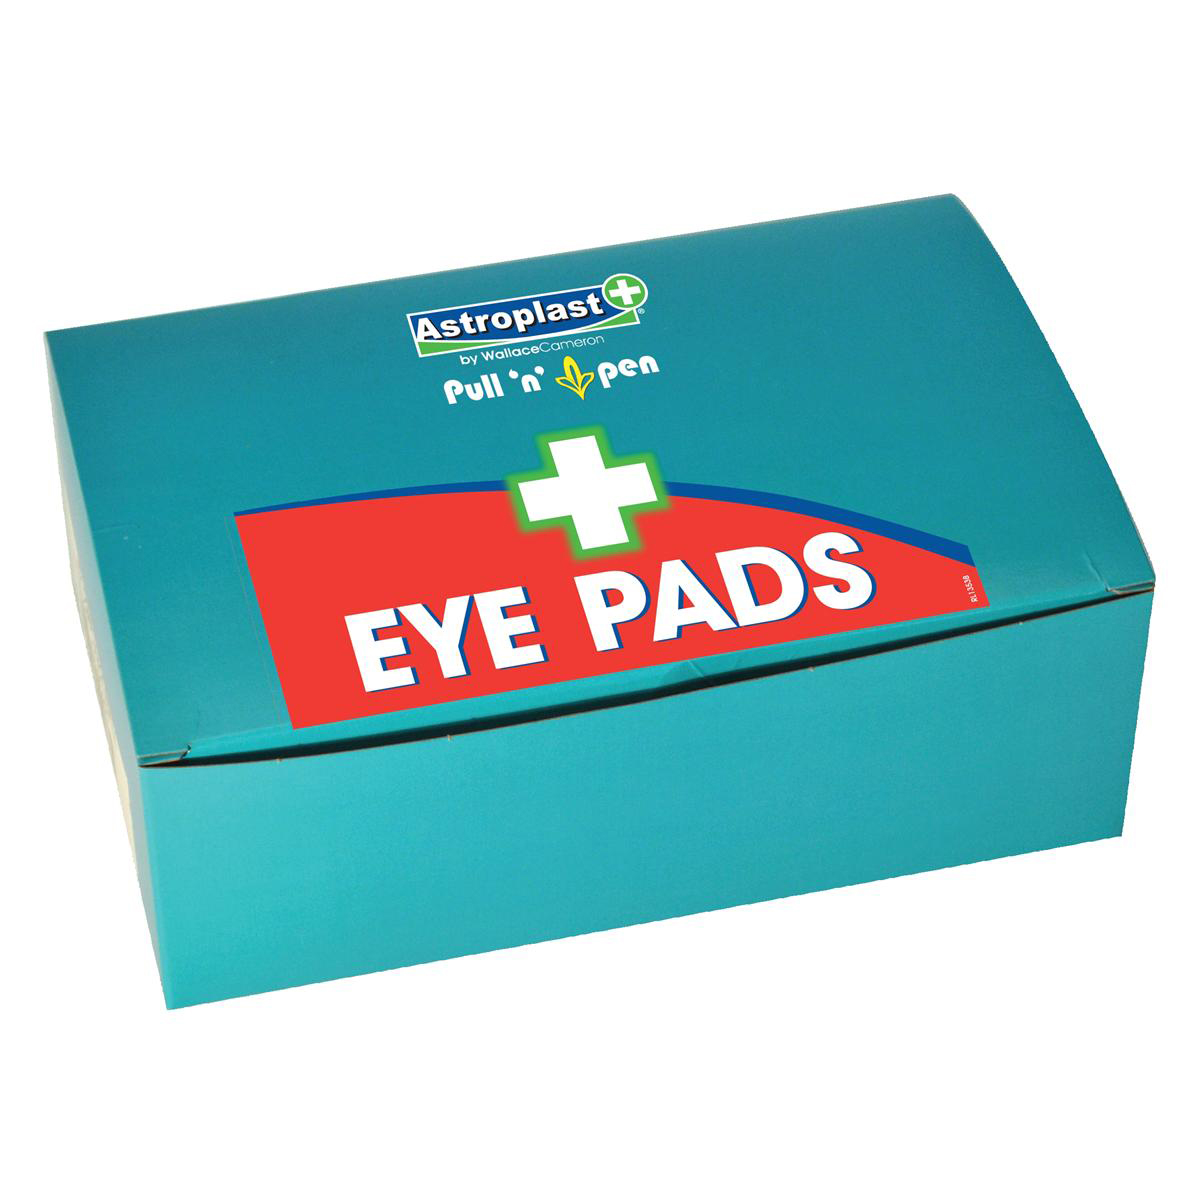 Eyewashers or eye wash stations Wallace Cameron Astroplast Eyepads Twist & Open Refill Ref 1402081 Pack 6